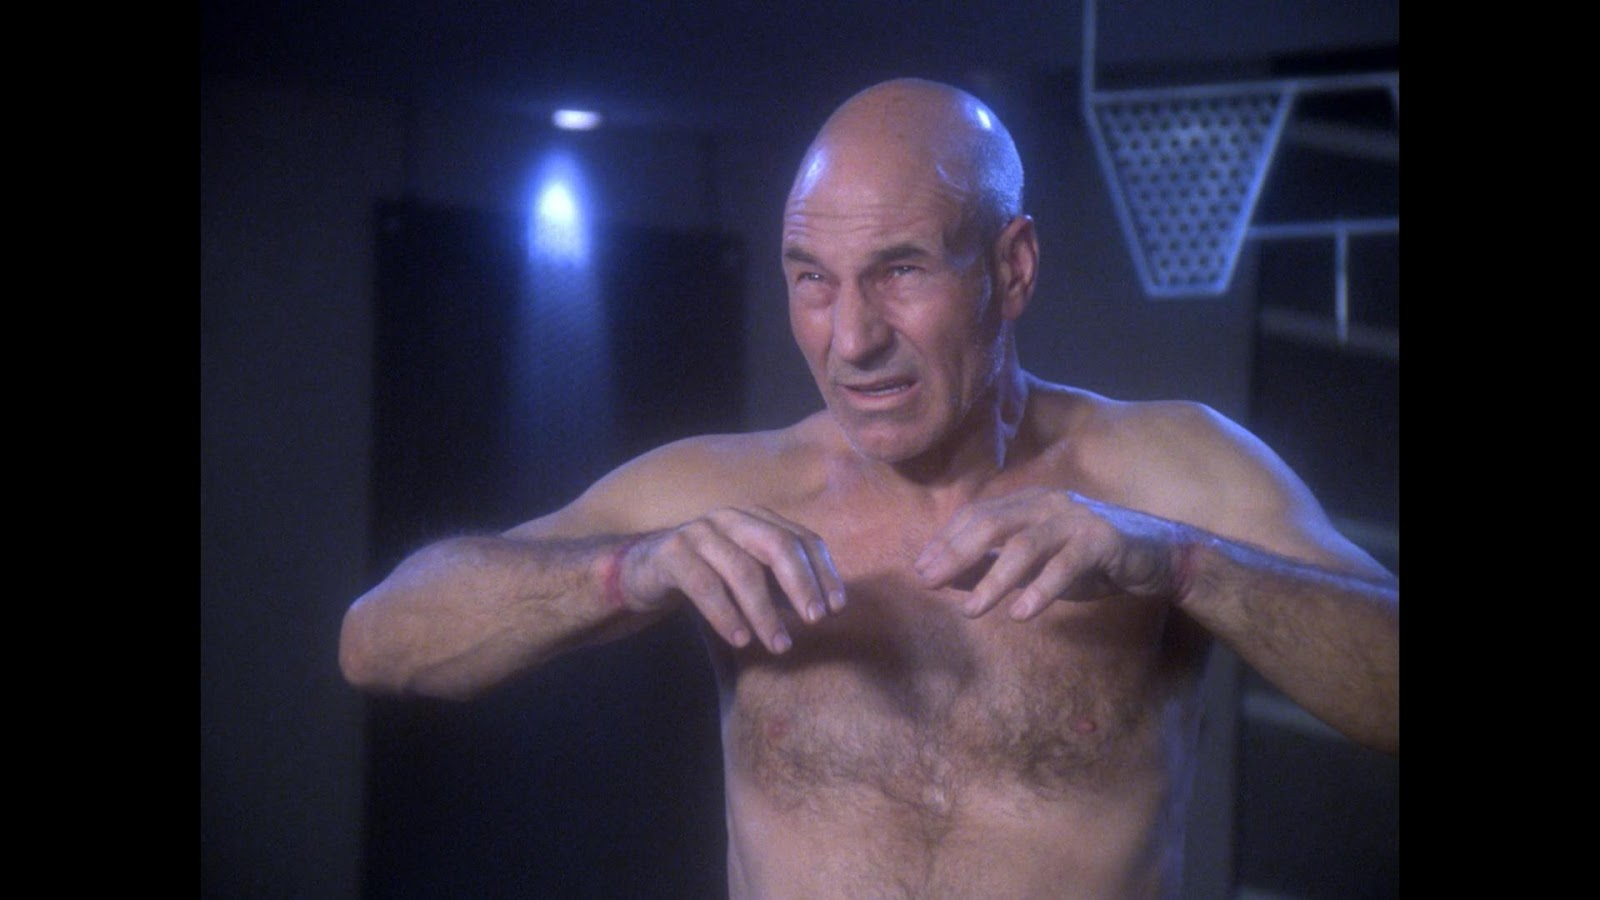 13 Best Captain Picard Episodes In Star Trek History The Geek Twins